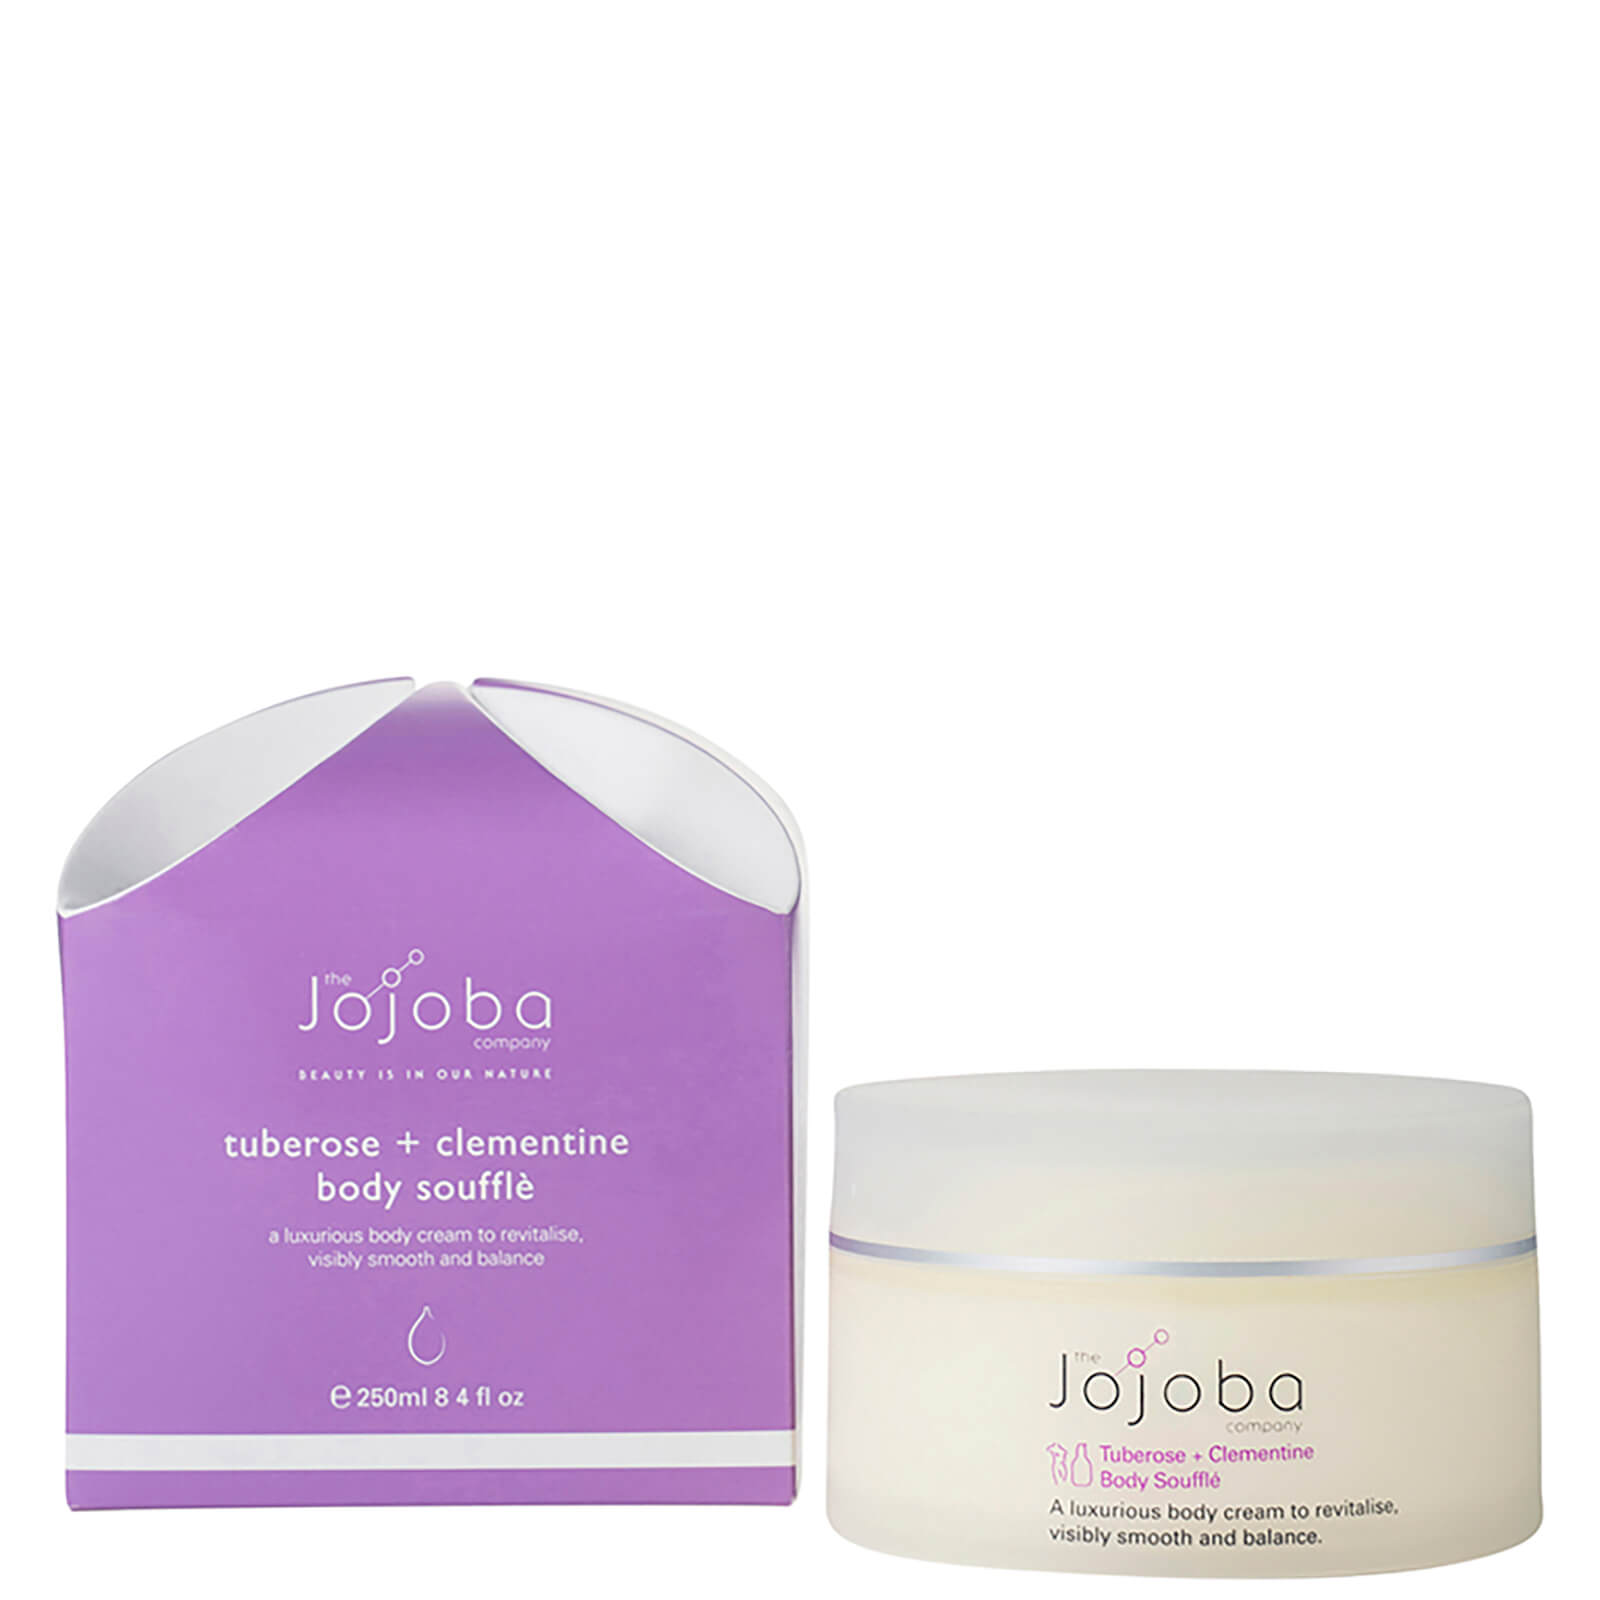 The Jojoba Company Tuberose And Clementine Body Souffle